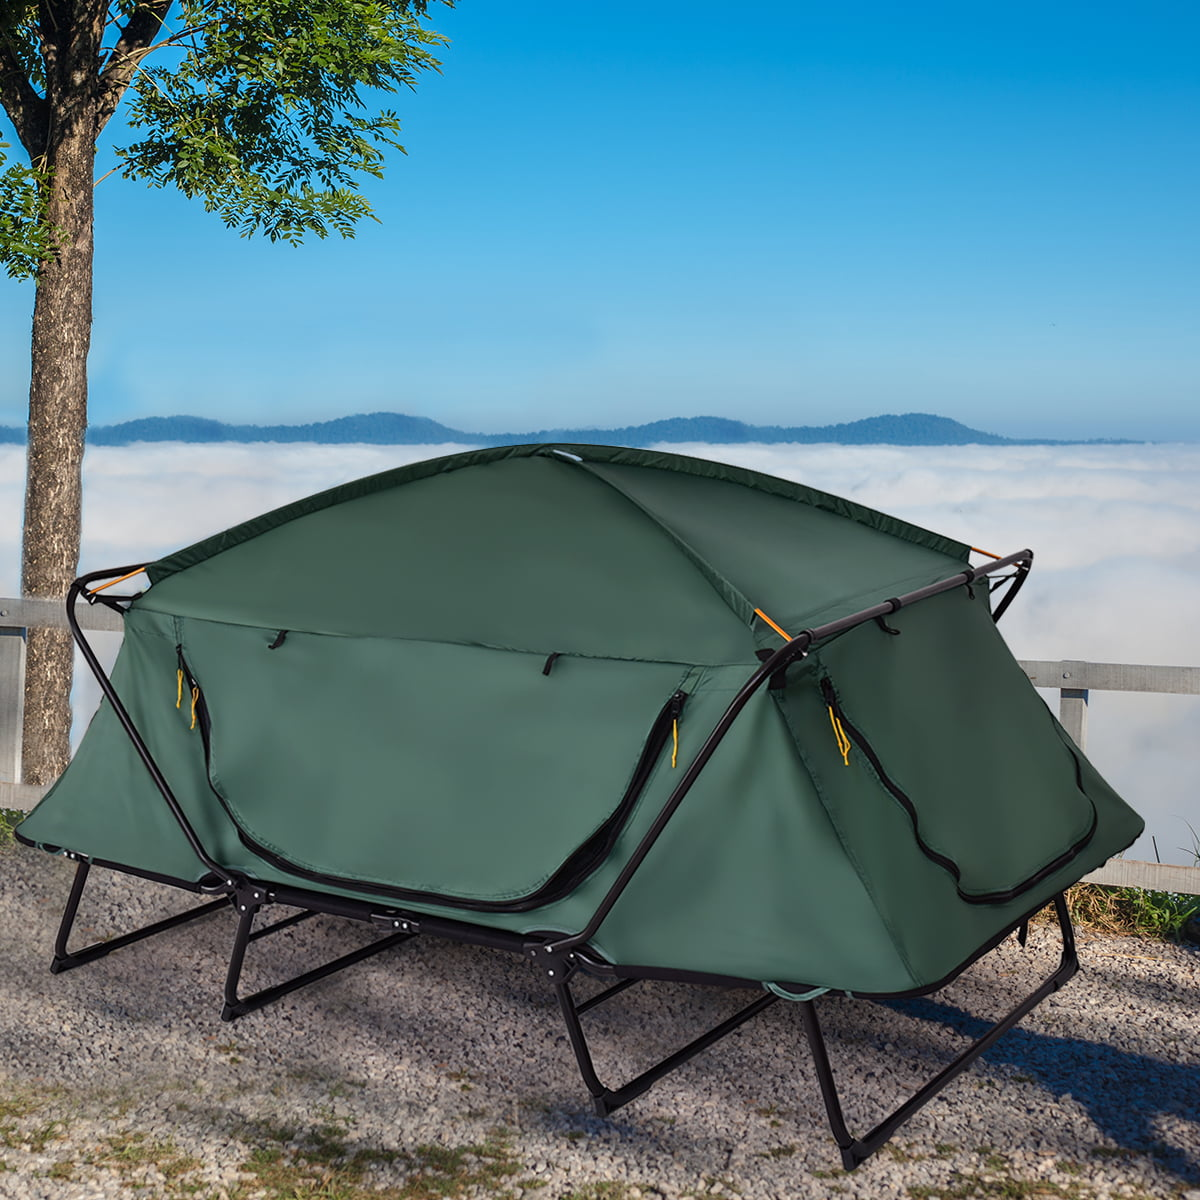 Gymax 2 Person Folding Hiking Outdoor Elevated Camping Tent Cot Waterproof w  Carry Bag by Gymax